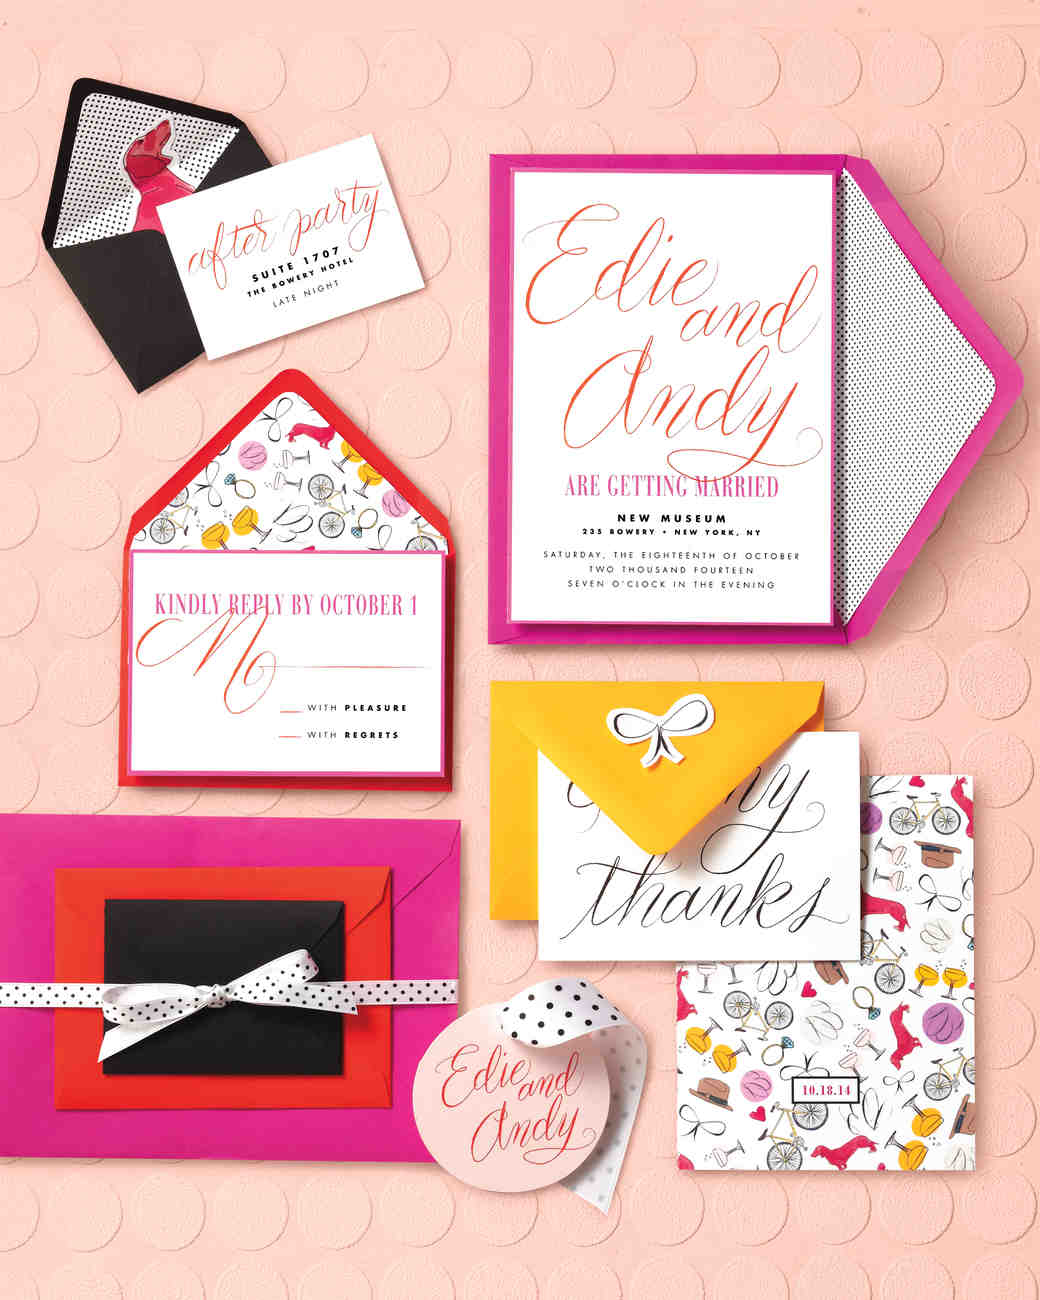 From Klimt to Warhol: Wedding Stationery Ideas Straight from a ...